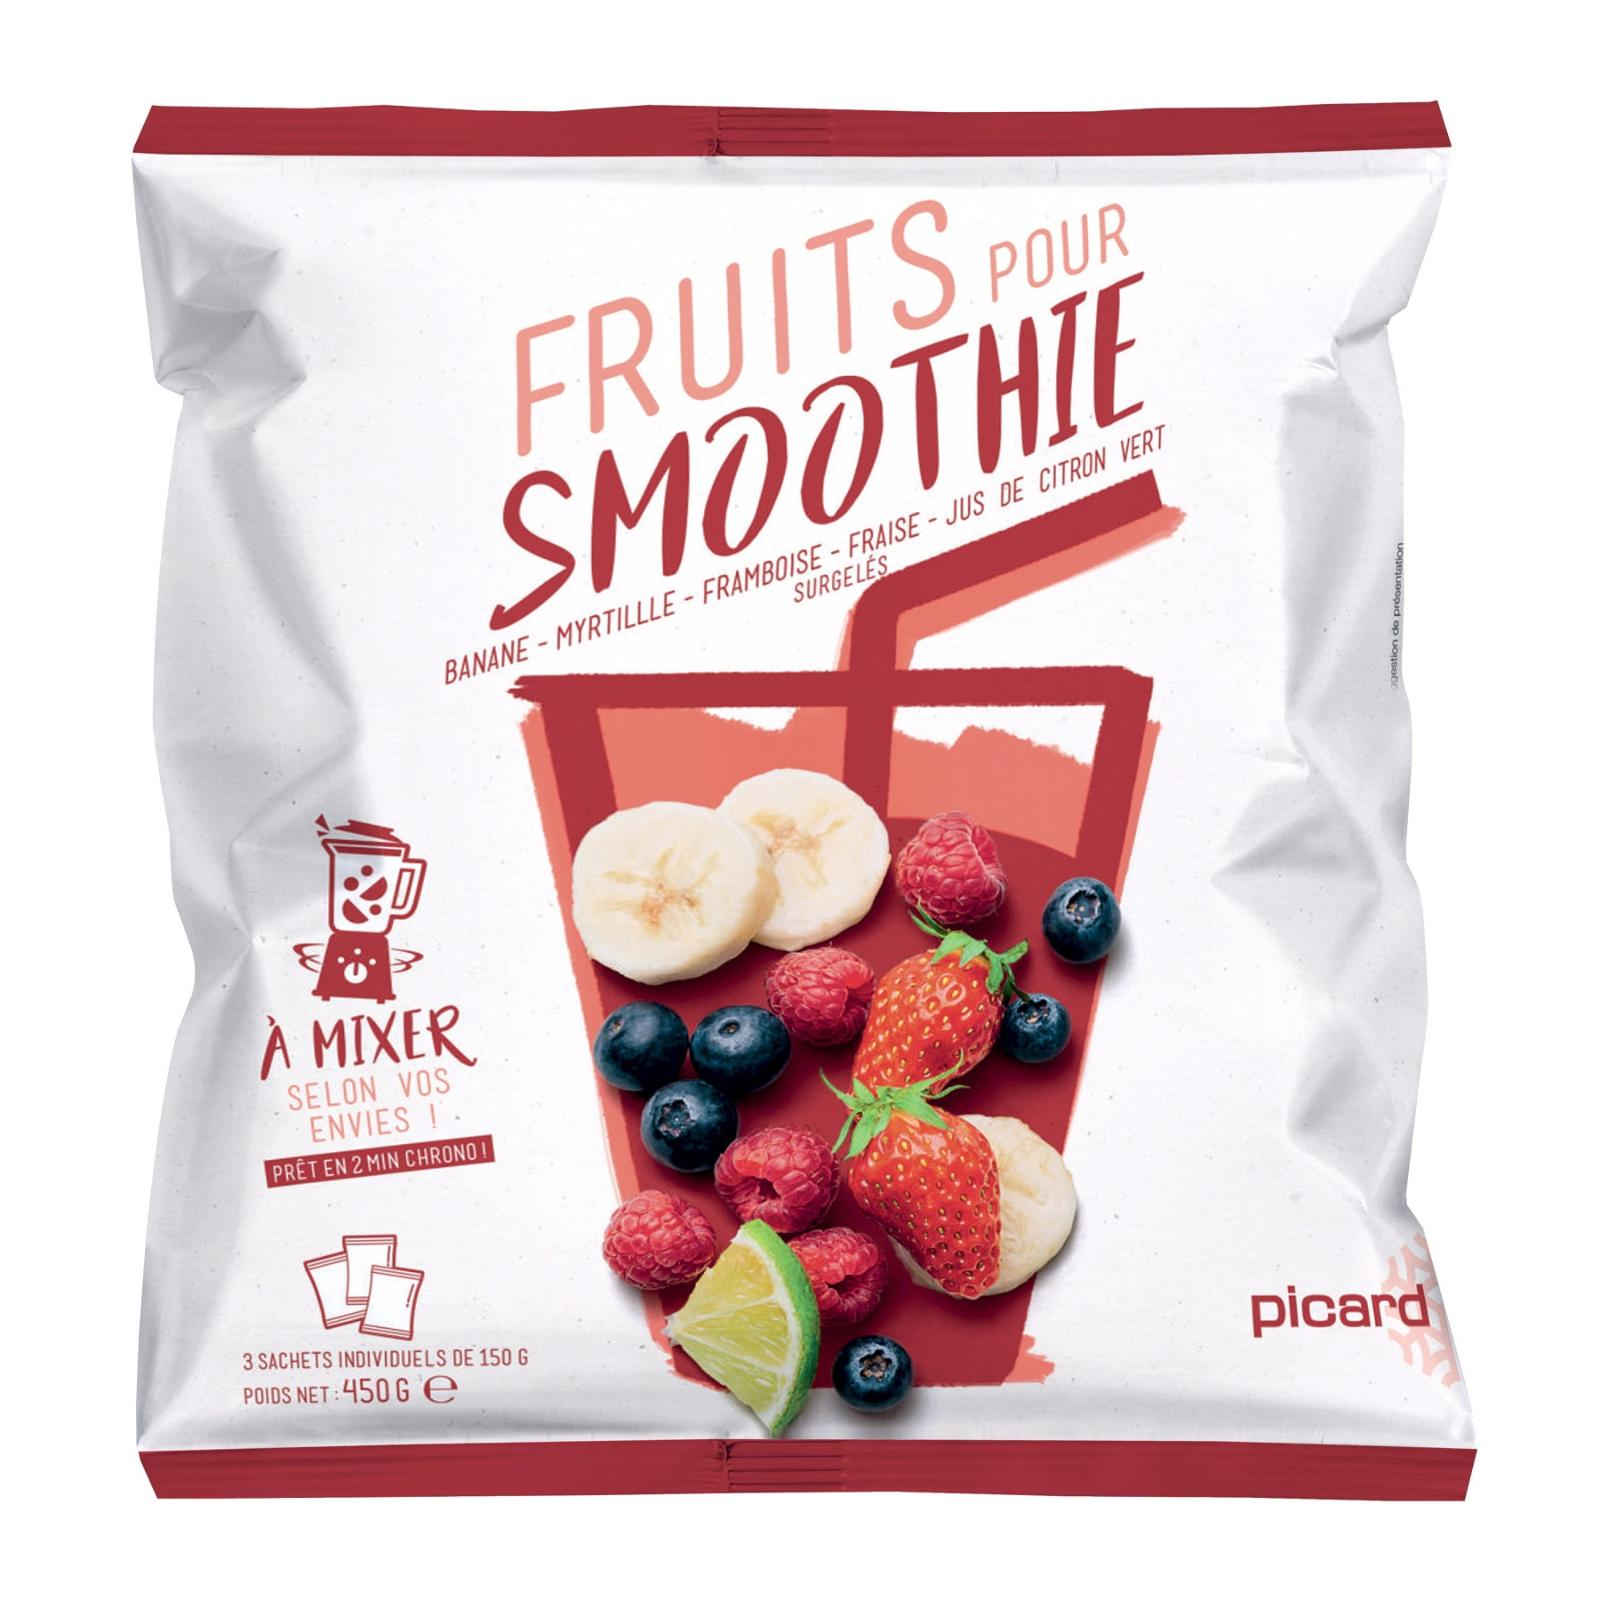 Picard Fruit Mix for Smoothies (Banana Bilberry Raspberry Strawberry) - Frozen